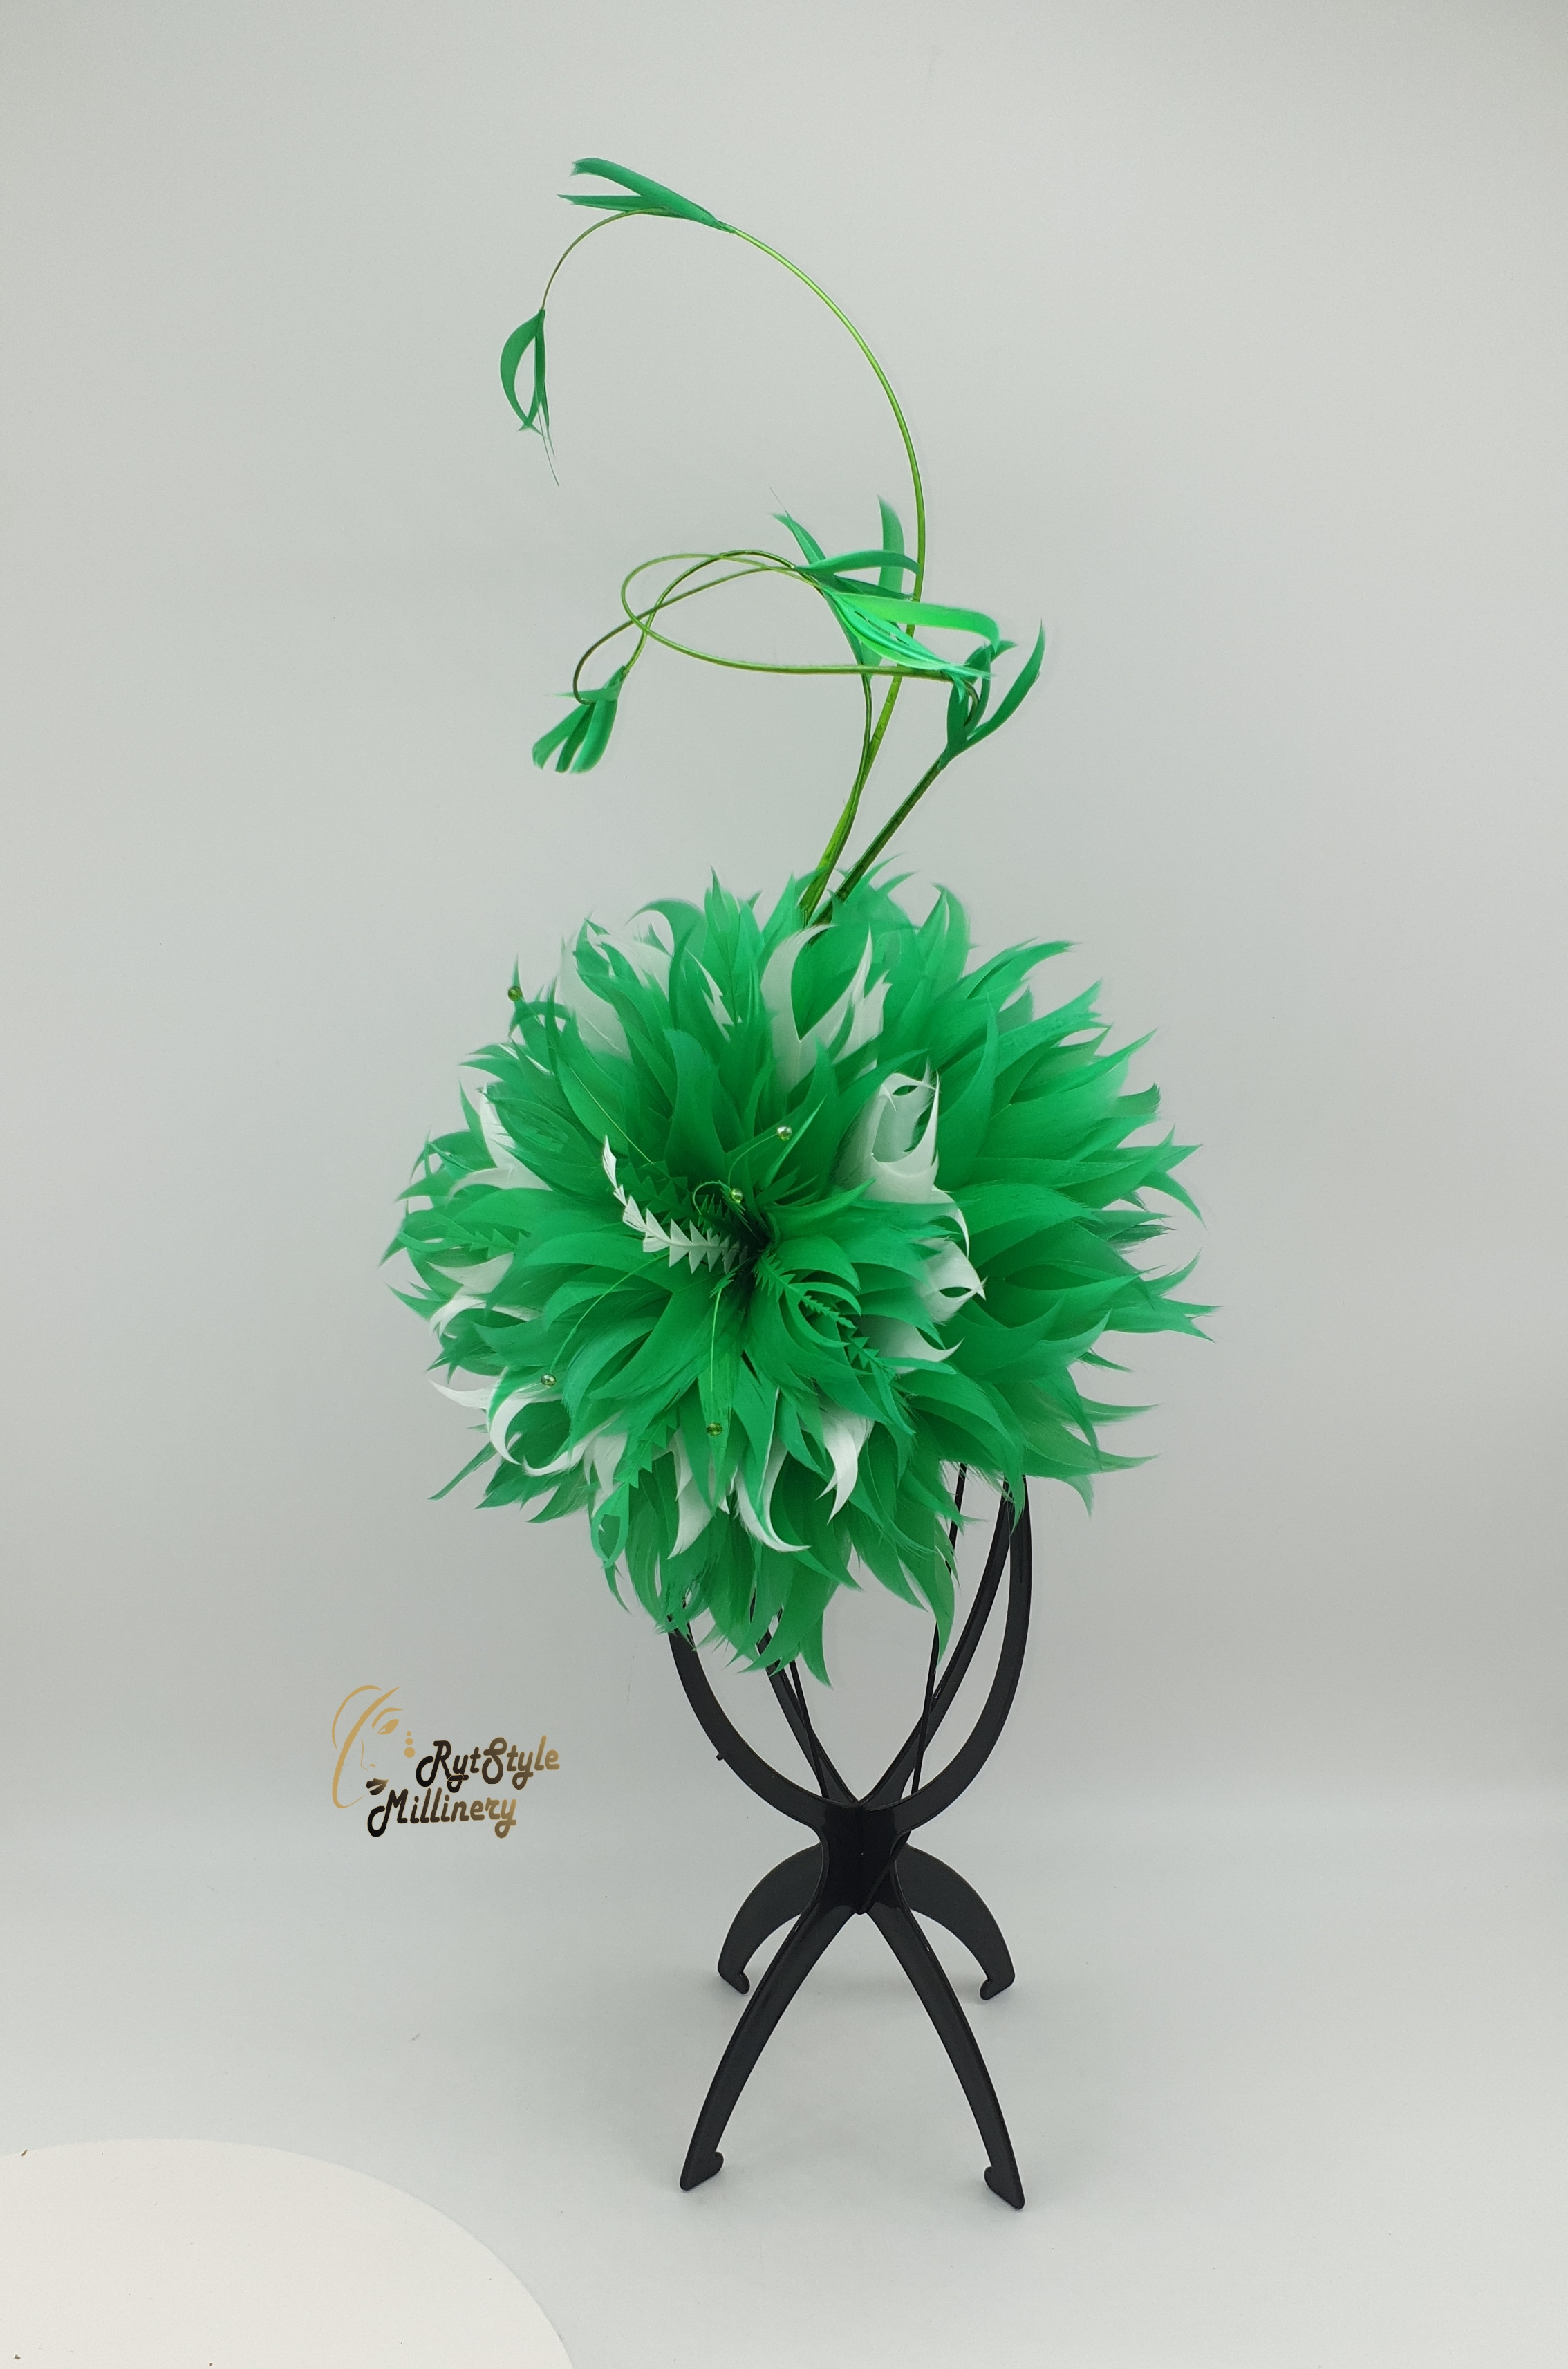 FEATHERED FLOWER HAT WITH QUILLS